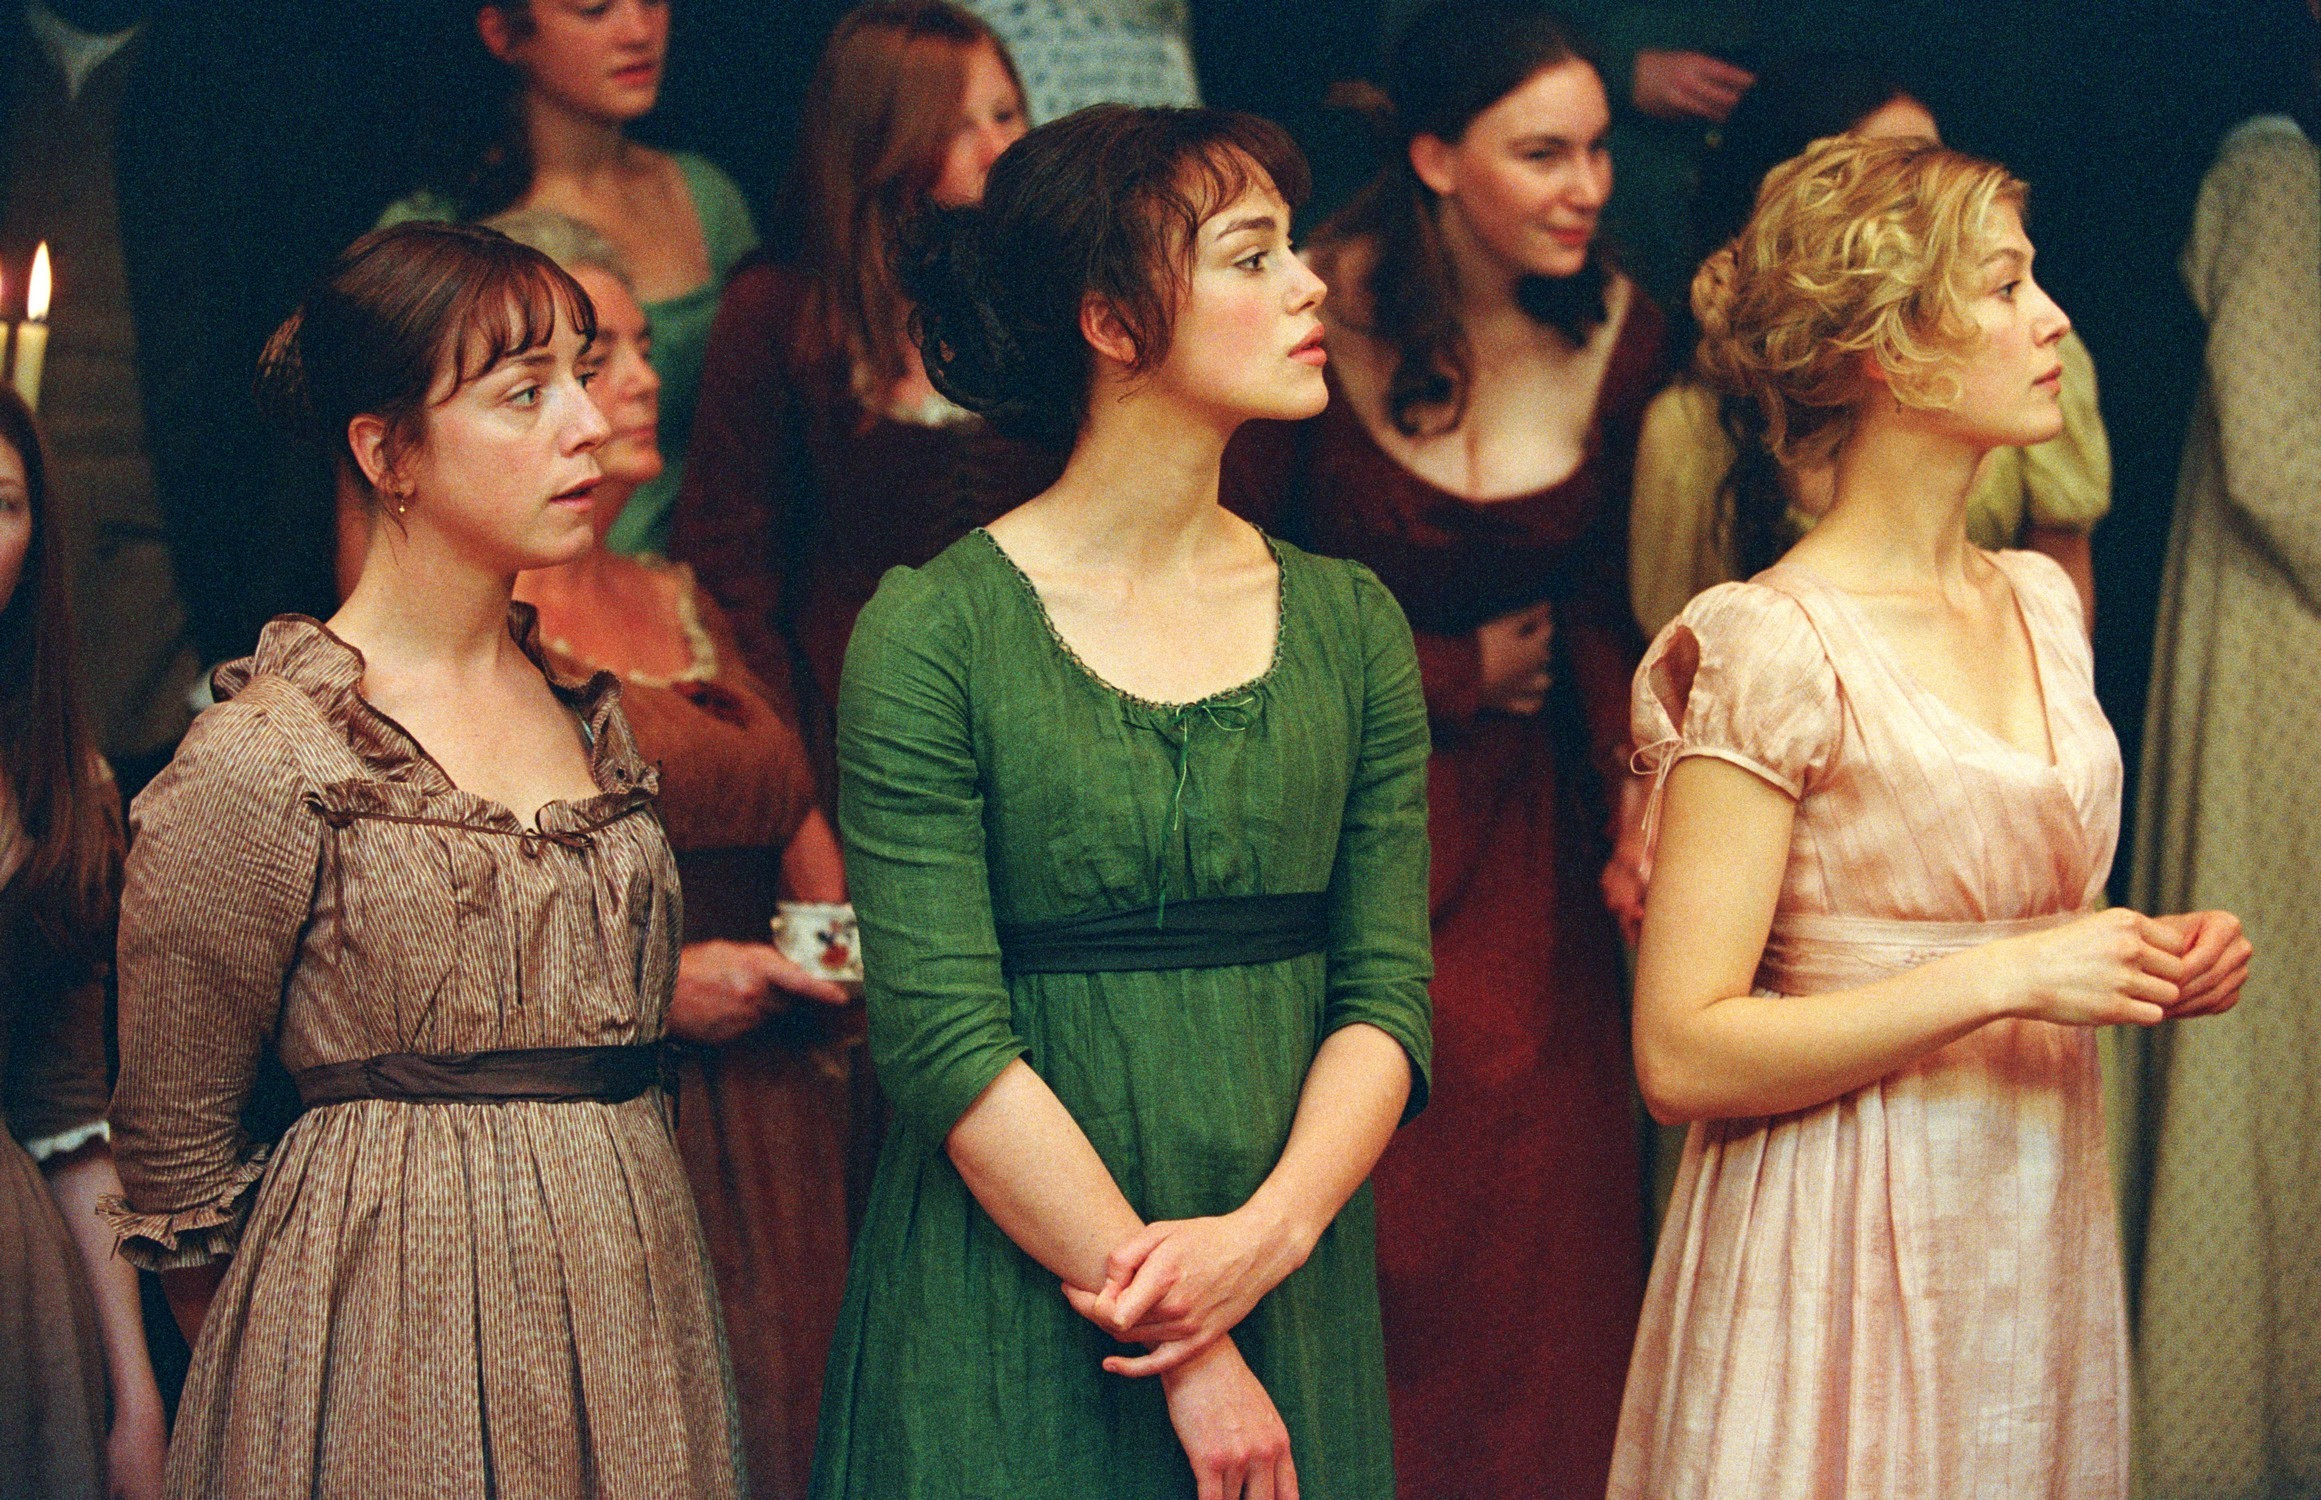 pride-and-prejudice-pride-and-prejudice-2005-17217341-2321-1500